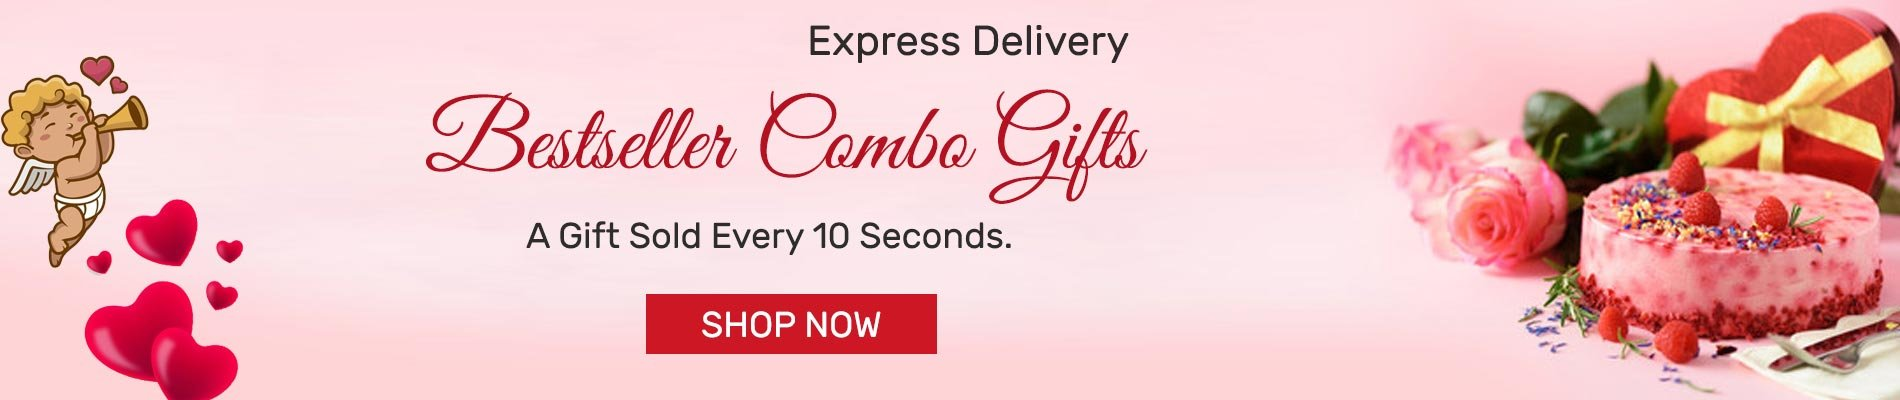 Best Seller Combo Gifts